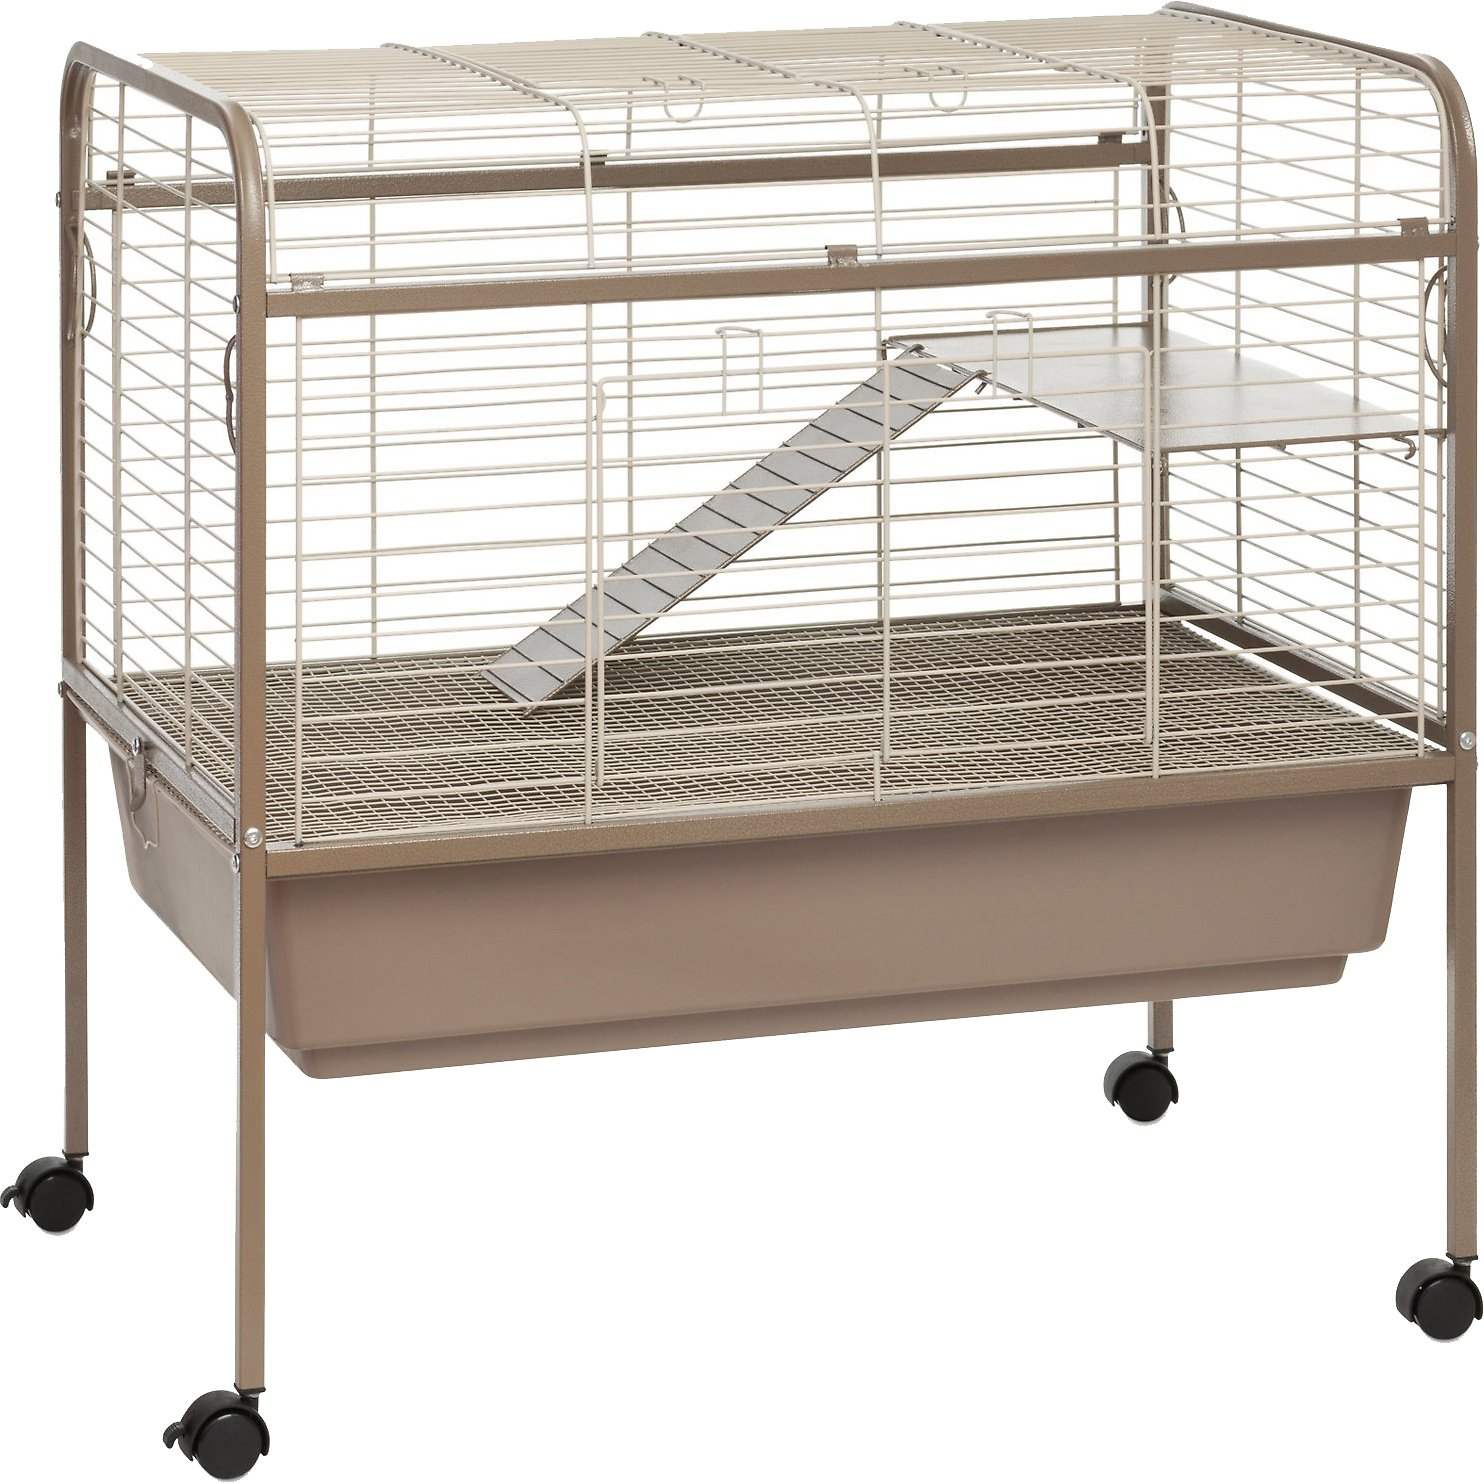 Prevue Pet Products Small Animal Cage, Coco & White - Chewy.com